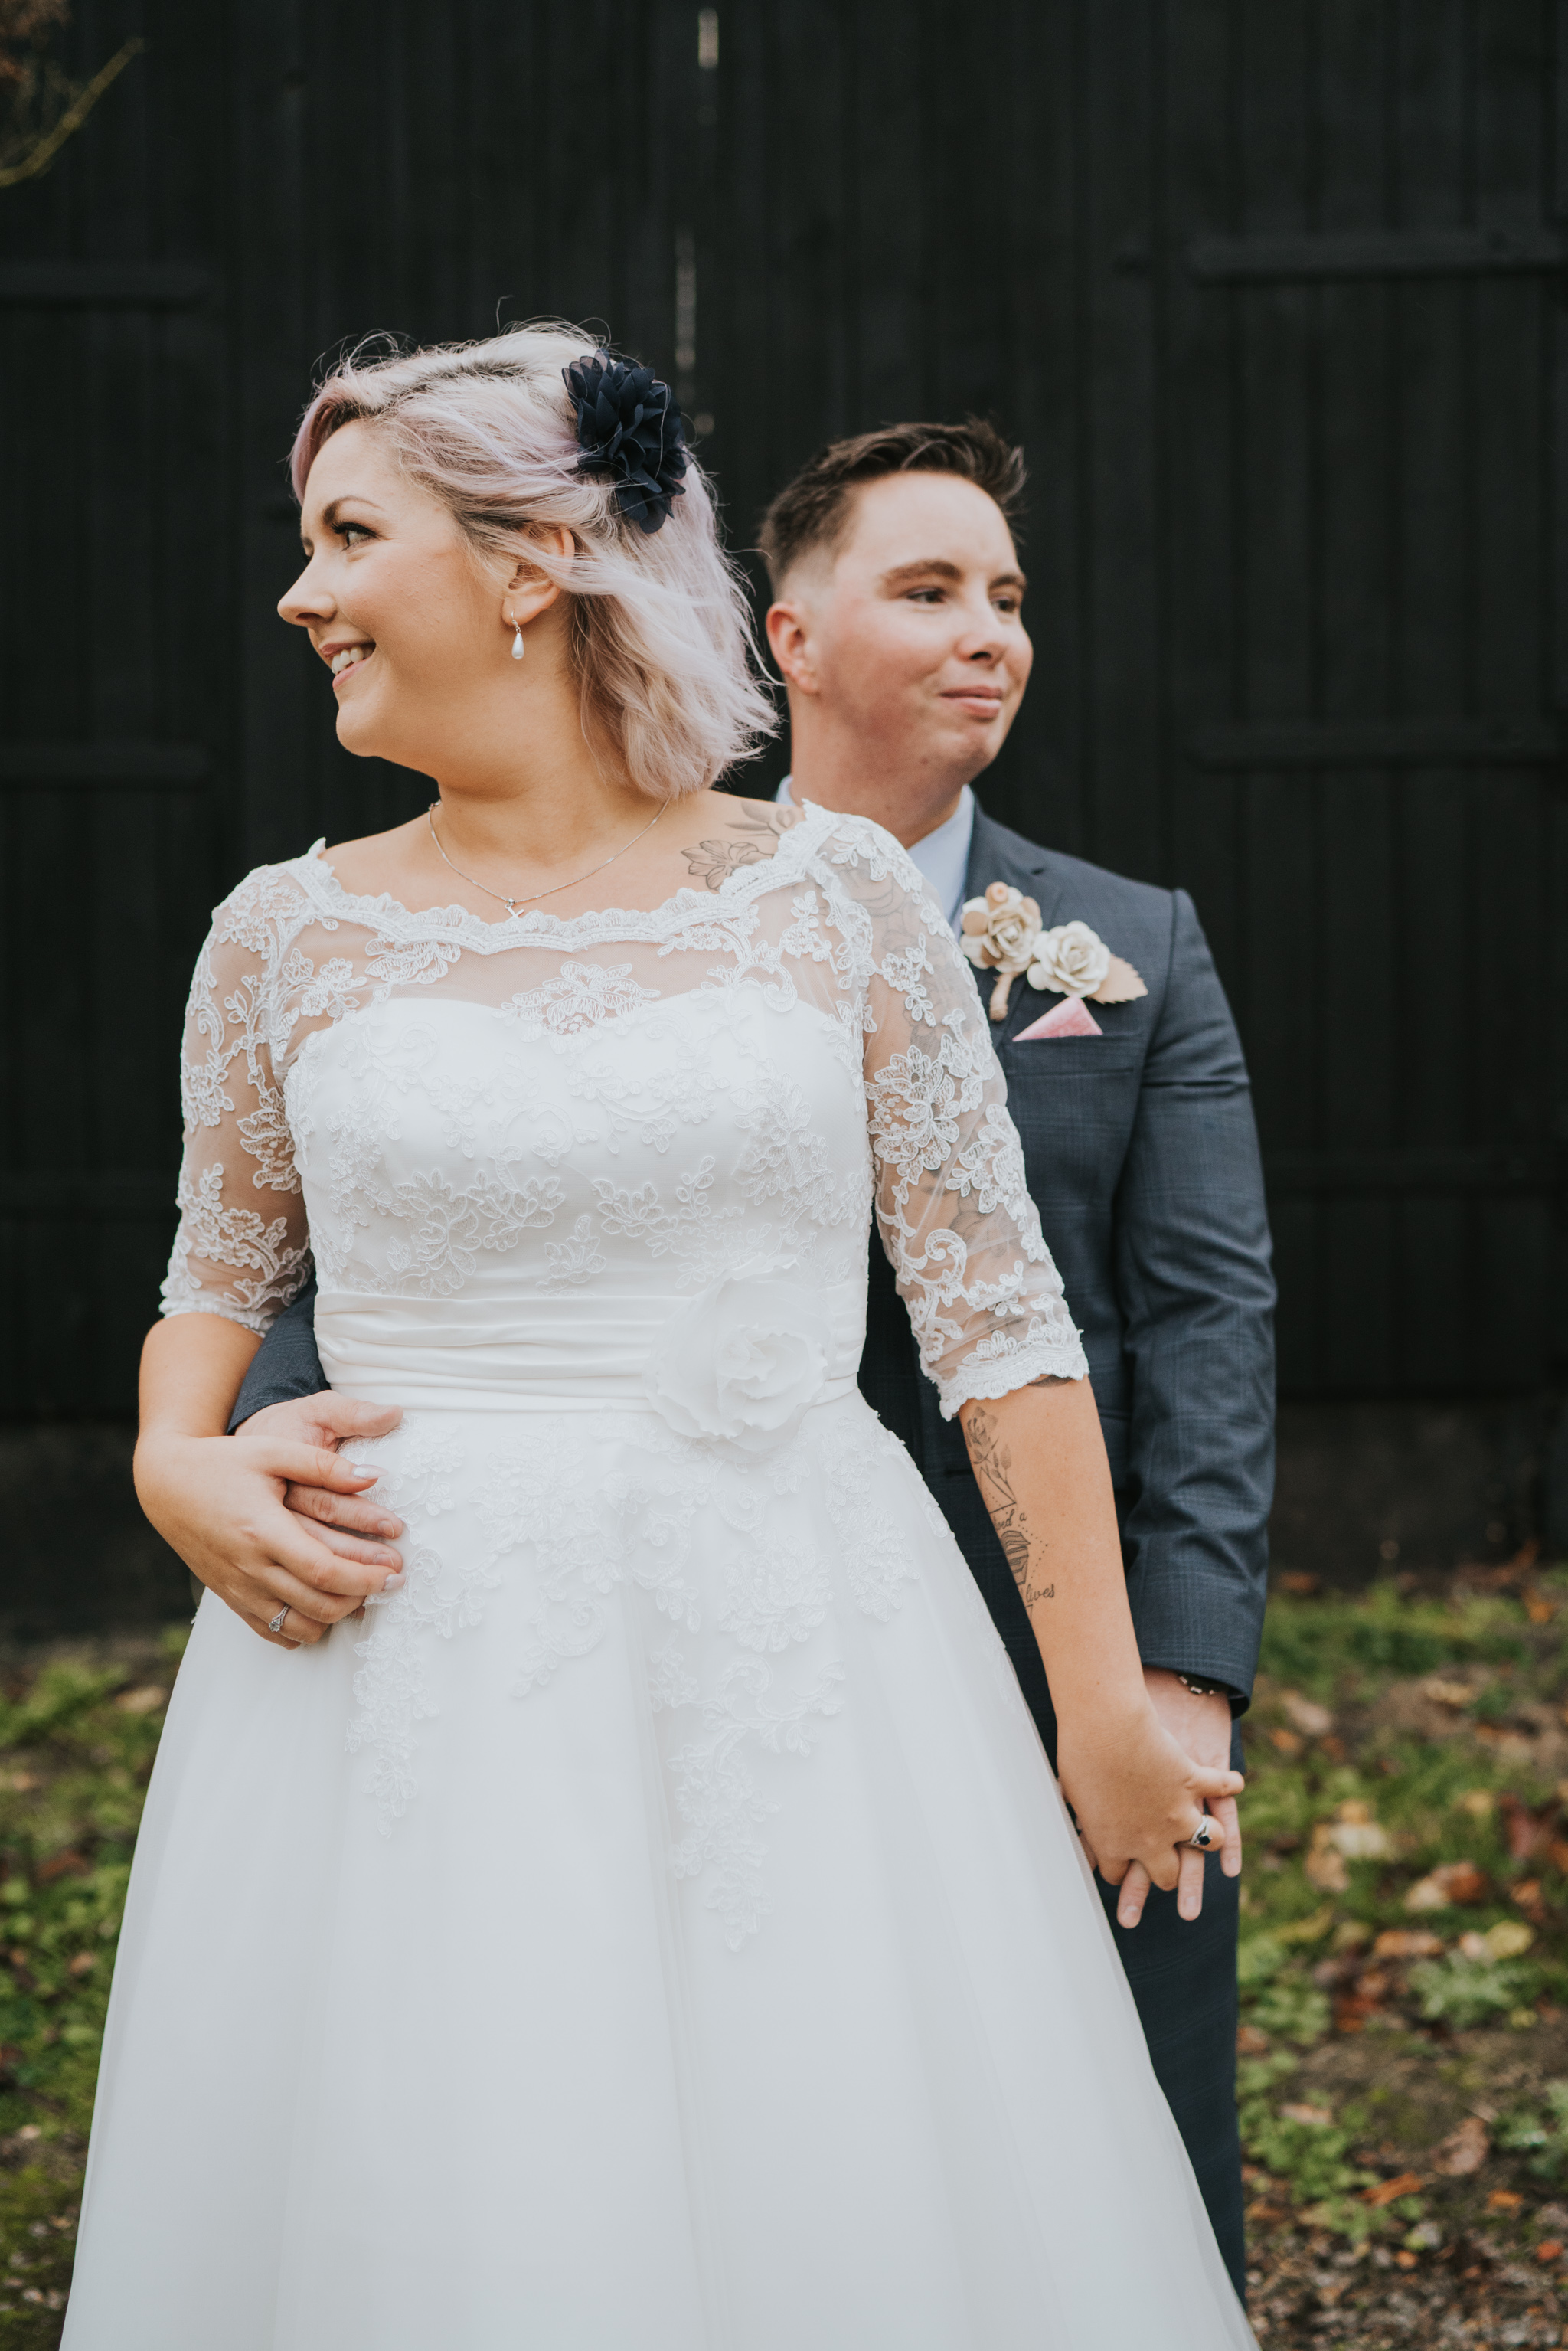 rhia-james-rustic-crabbs-barn-vintage-50s-retro-wedding-grace-elizabeth-colchester-essex-alternative-relaxed-wedding-family-photography-devon-suffolk-norfolk-essex (87 of 138).jpg